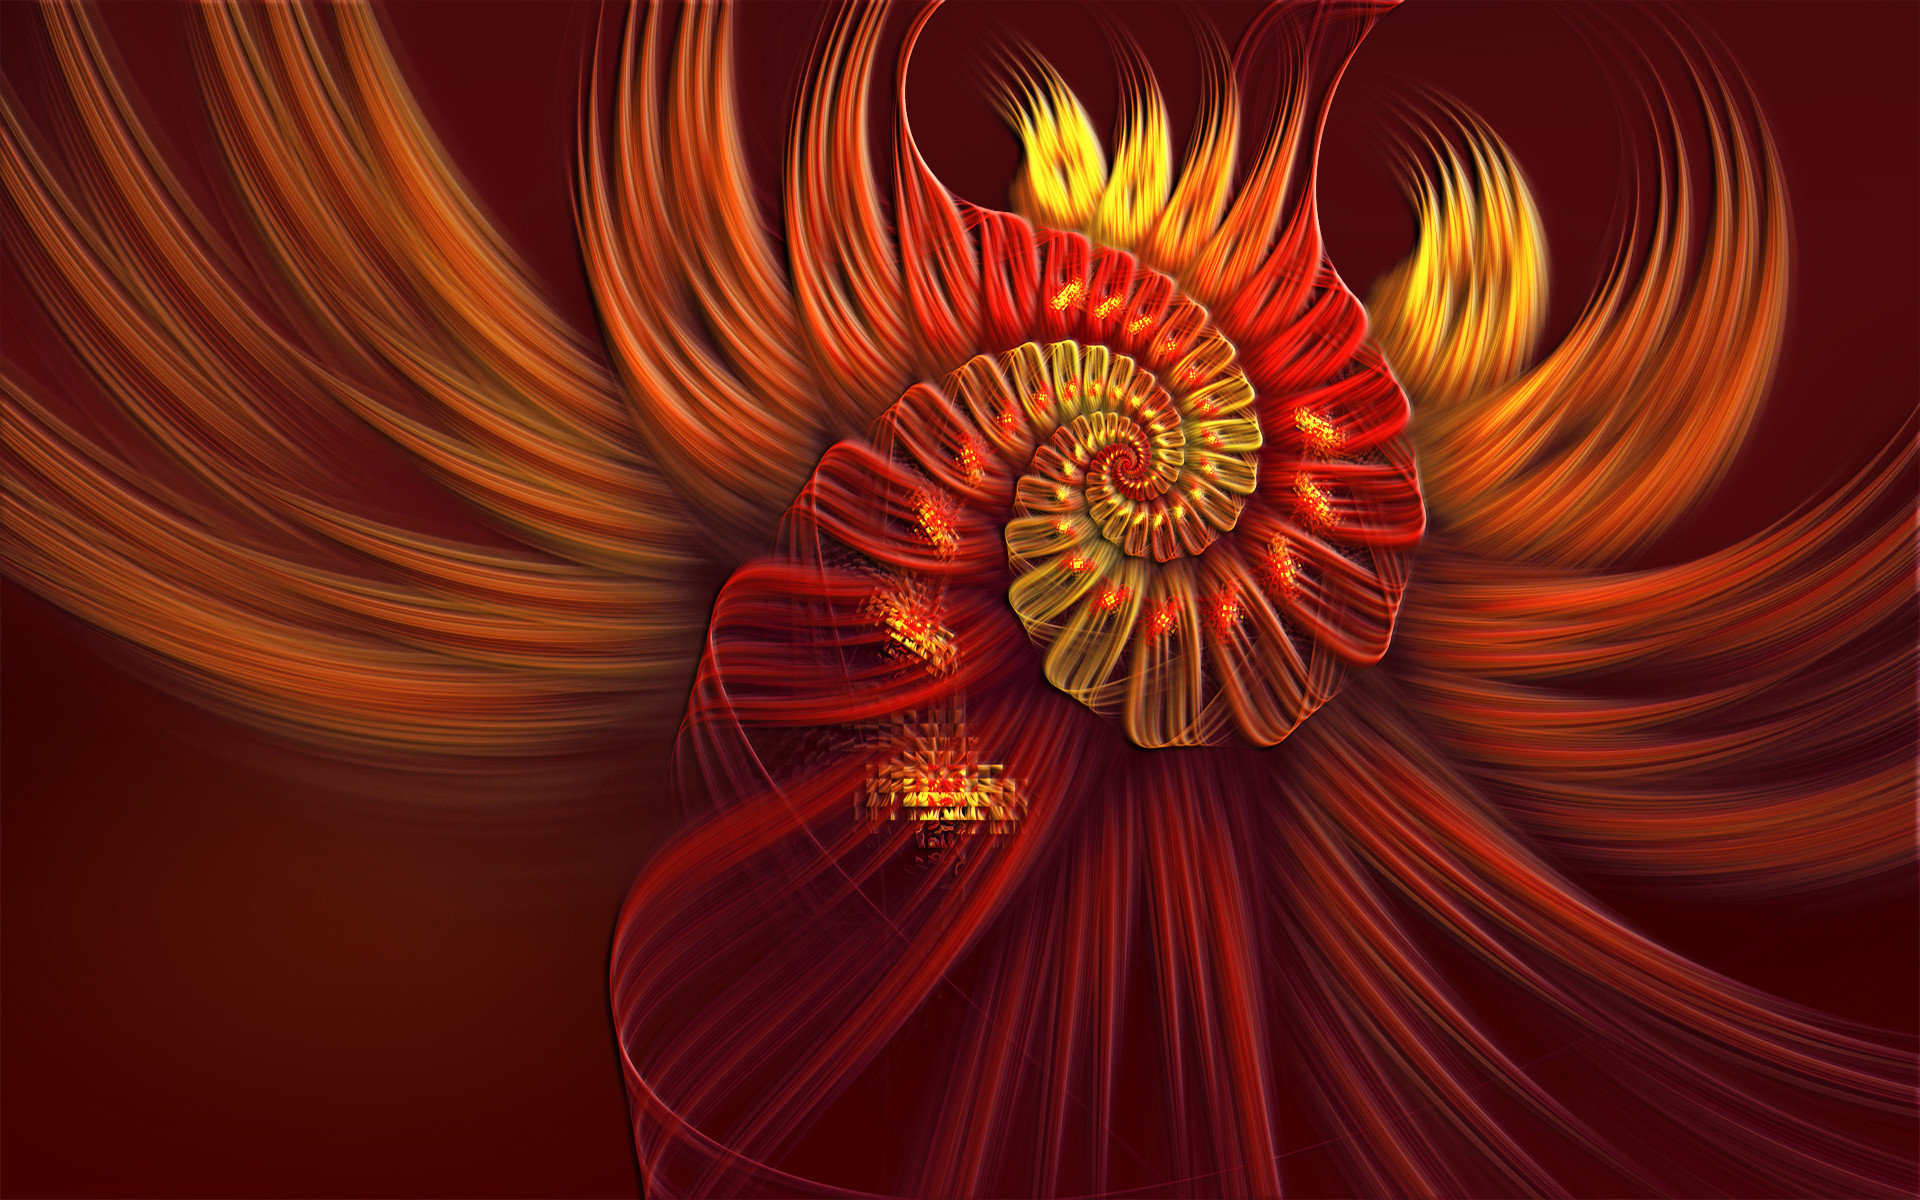 Subcategory: Abstract wallpapers